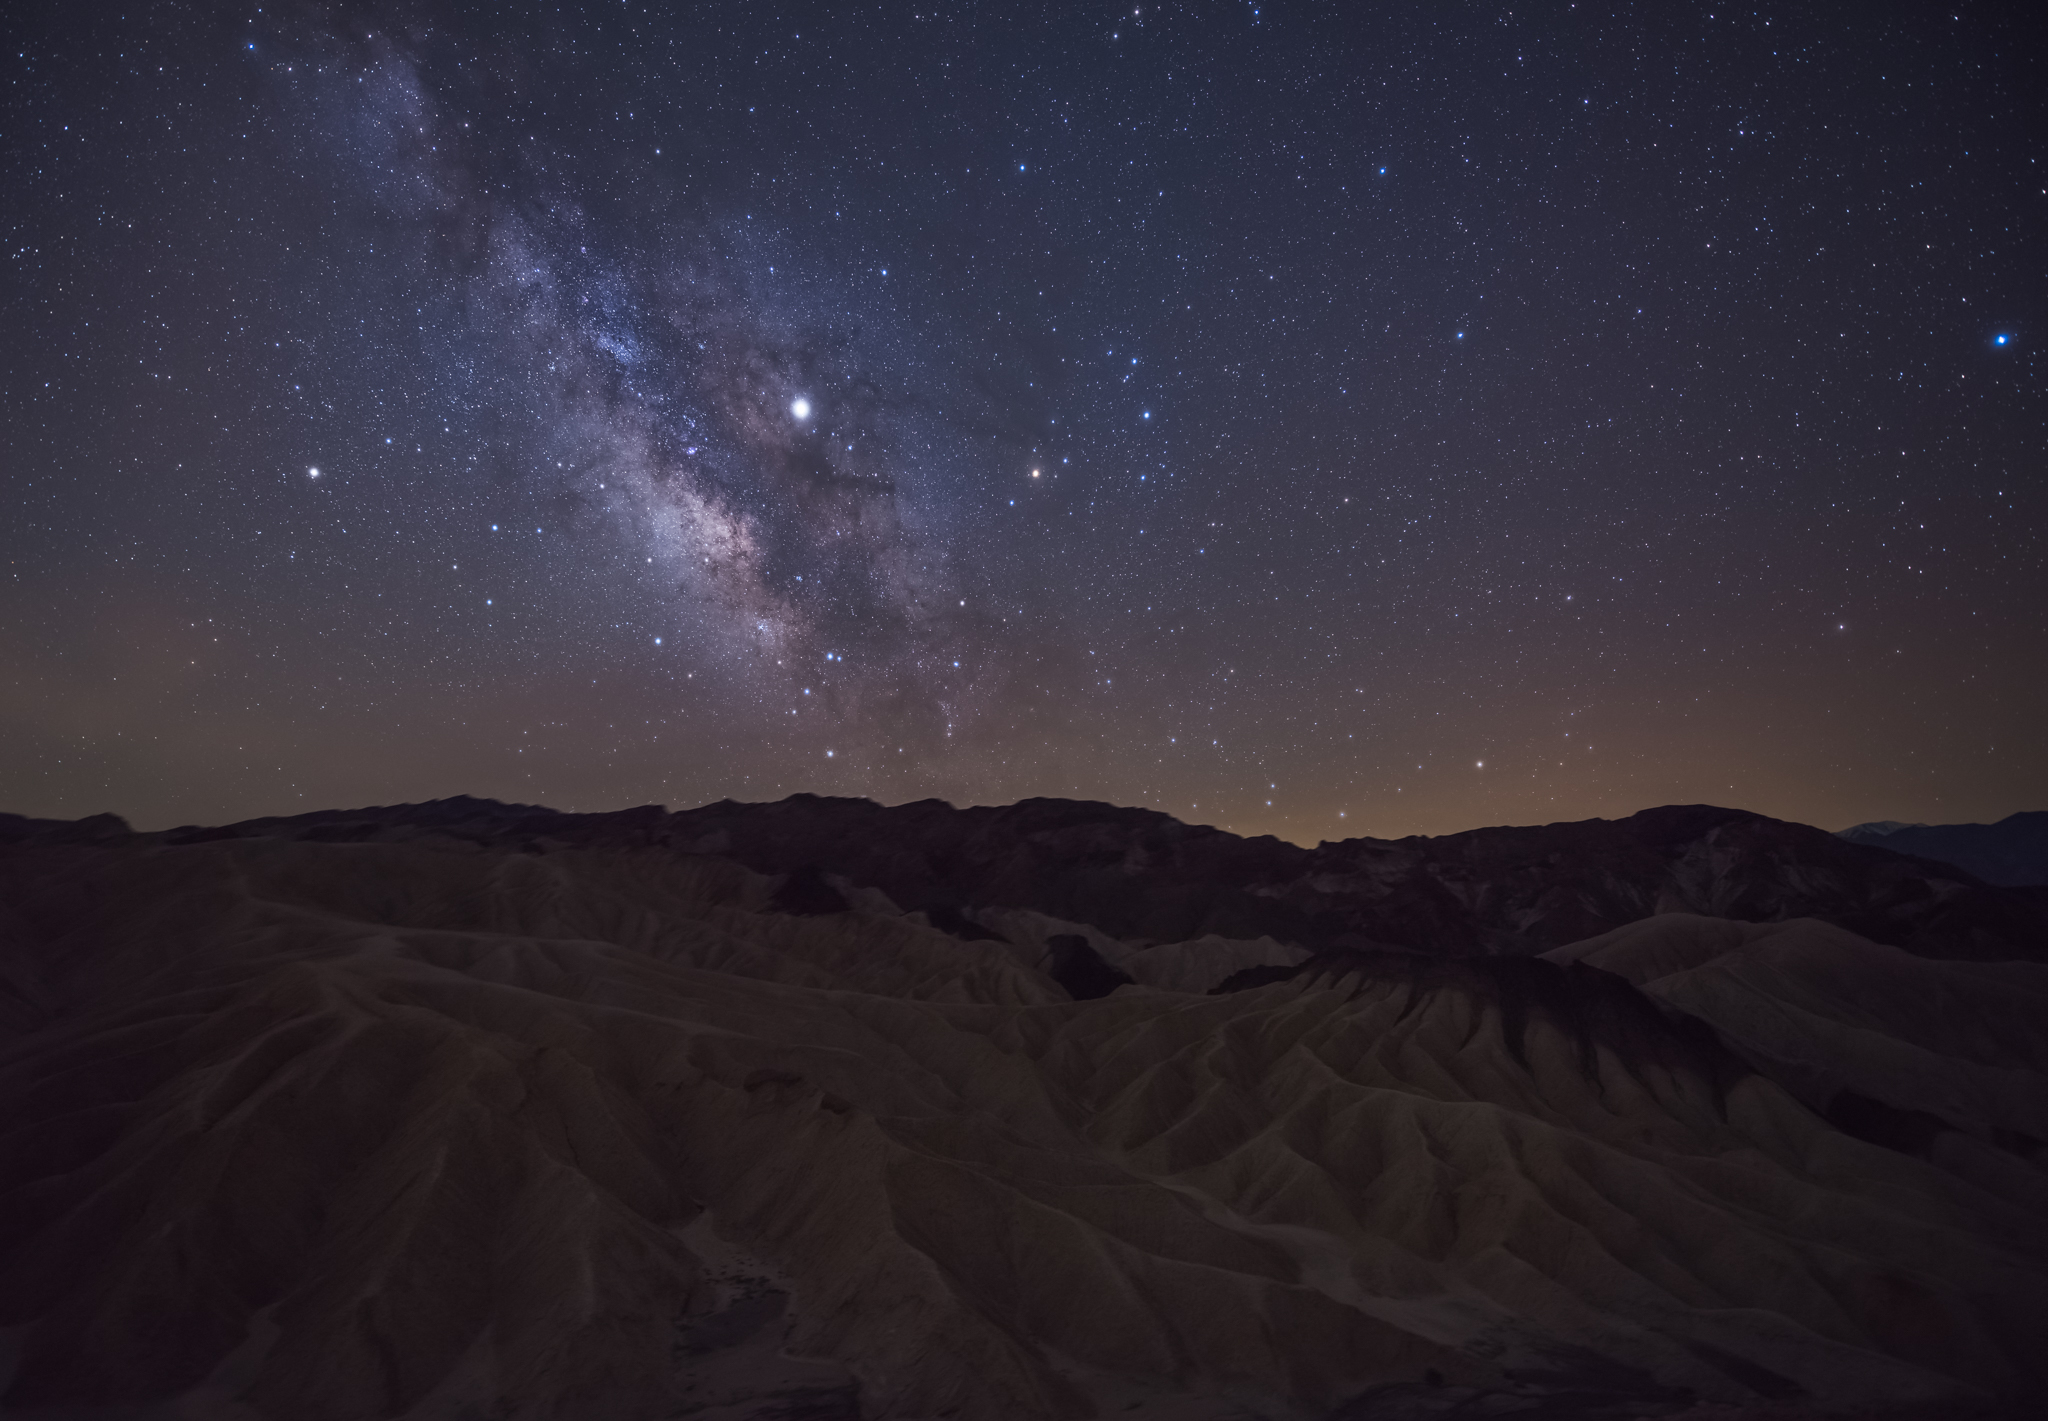 Guiding stars - Death Valley, CA